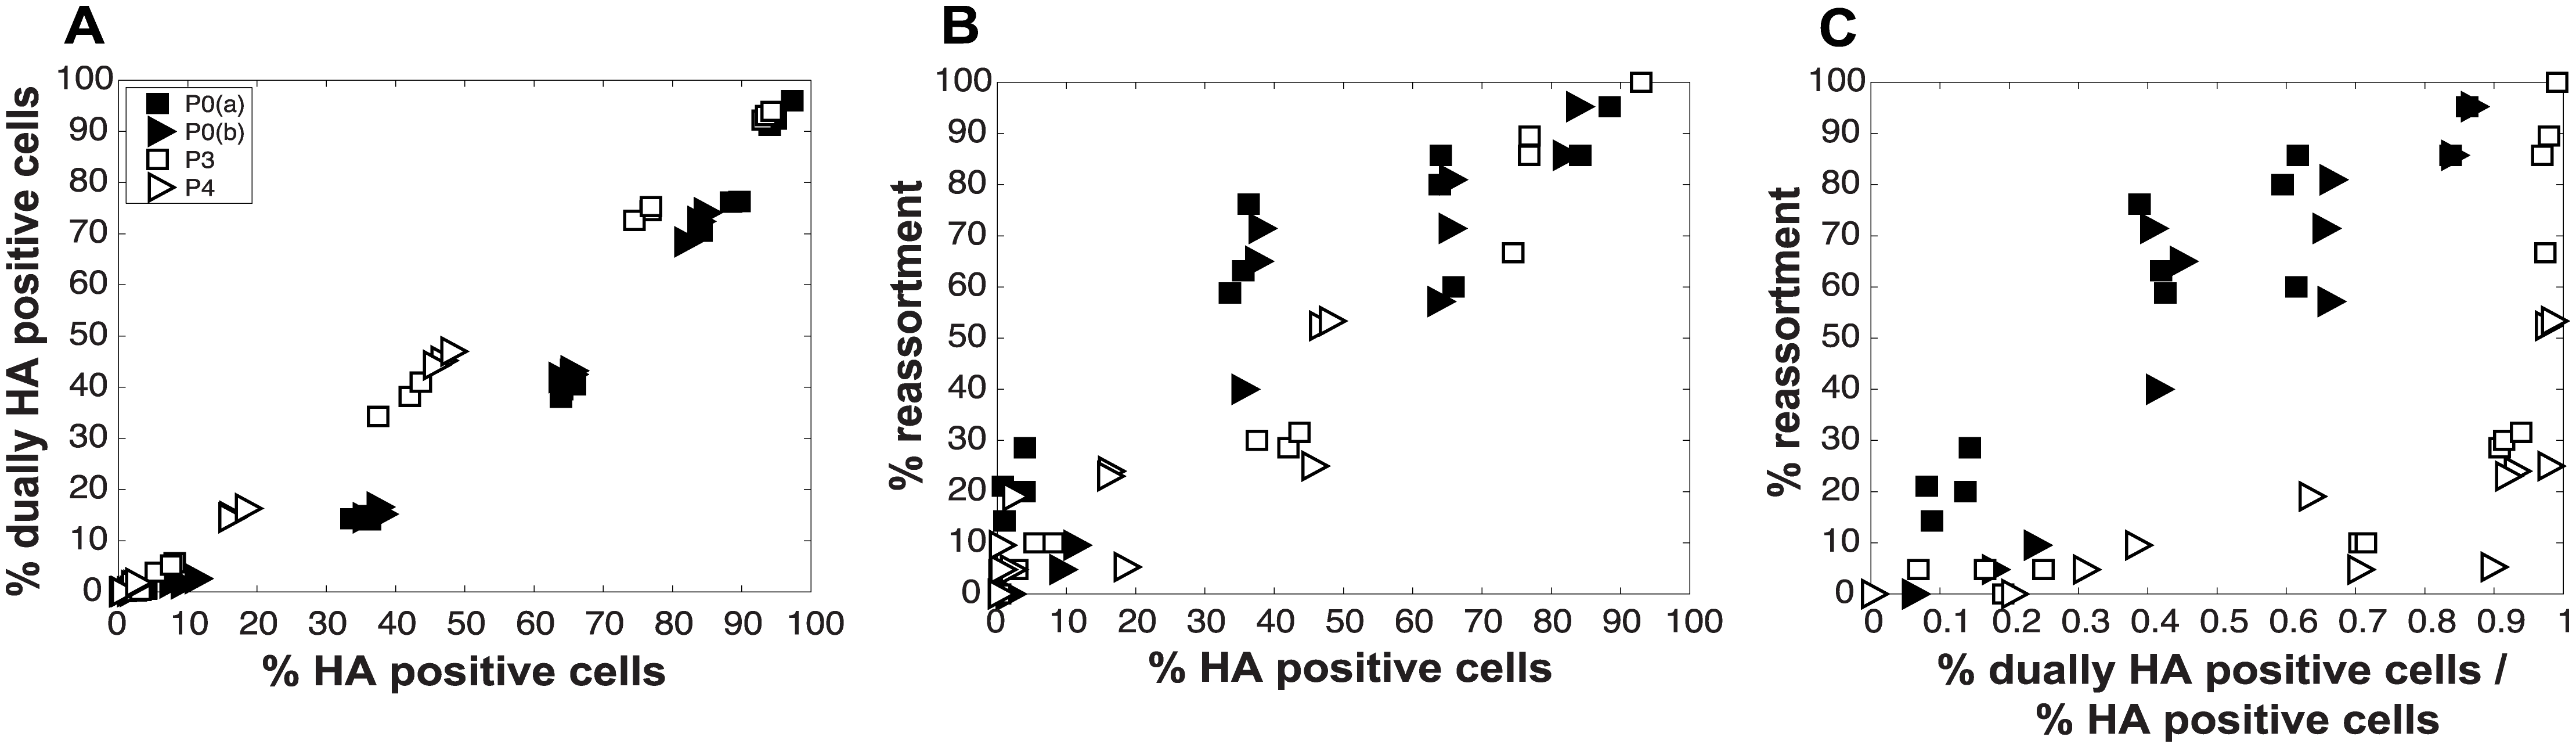 Virus populations dominated by DI particles give rise to a higher proportion of dually HA positive cells but a lower proportion of reassortant progeny viruses compared to virus populations with low DI content.